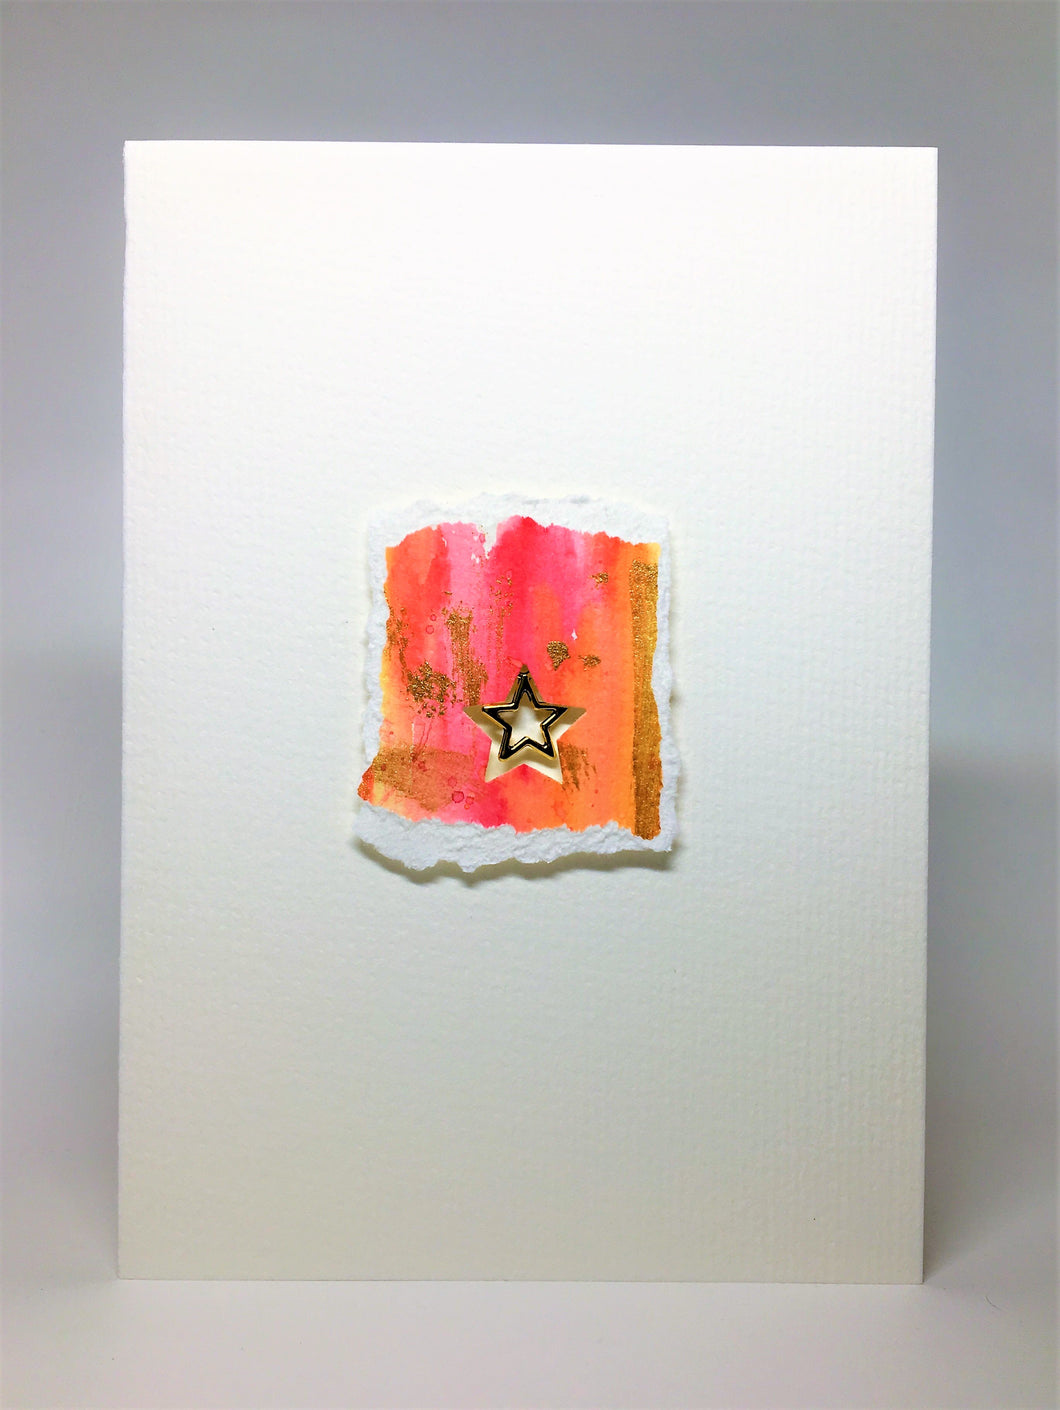 Original Handcrafted Christmas Card - Star Collection - Pink, Orange, Yellow and Gold - eDgE dEsiGn London